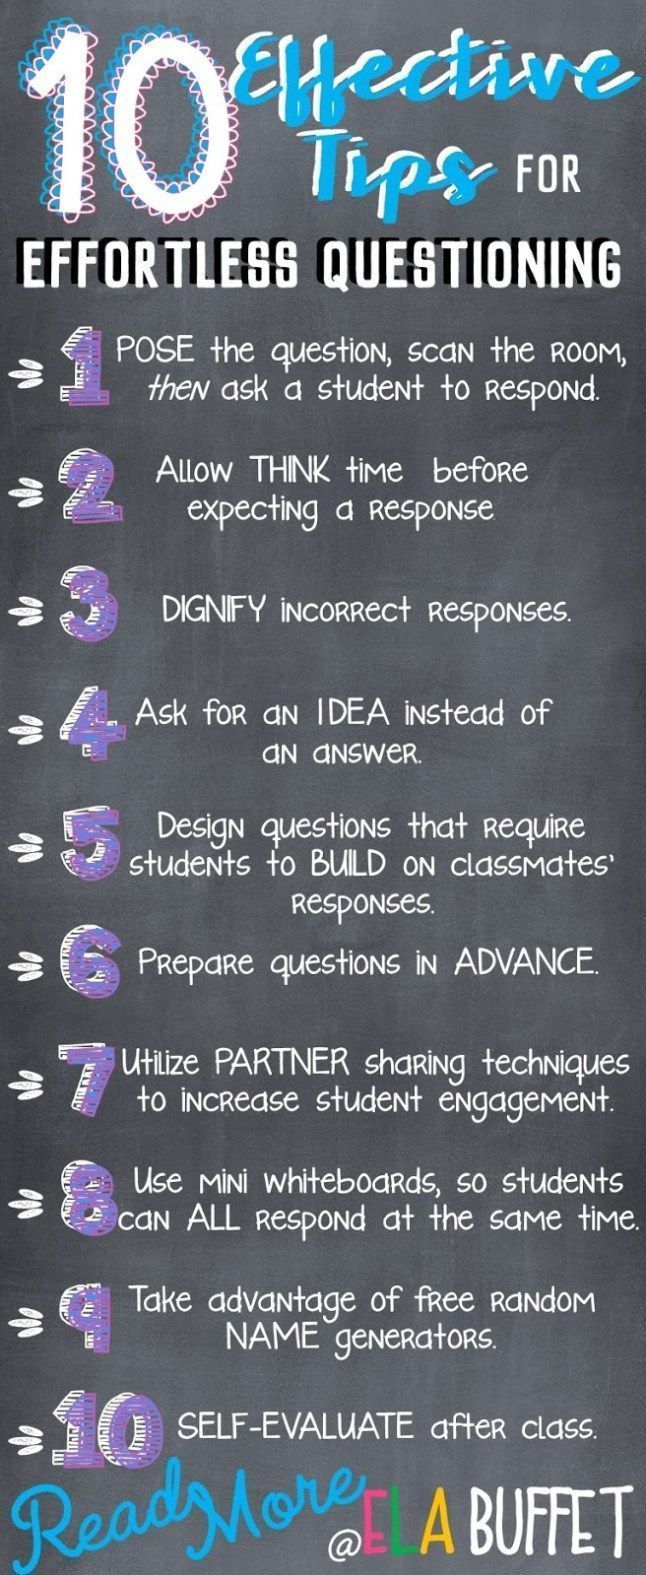 10 Tips for Successful Questioning | Teaching methods, Effective teaching, This or that questions